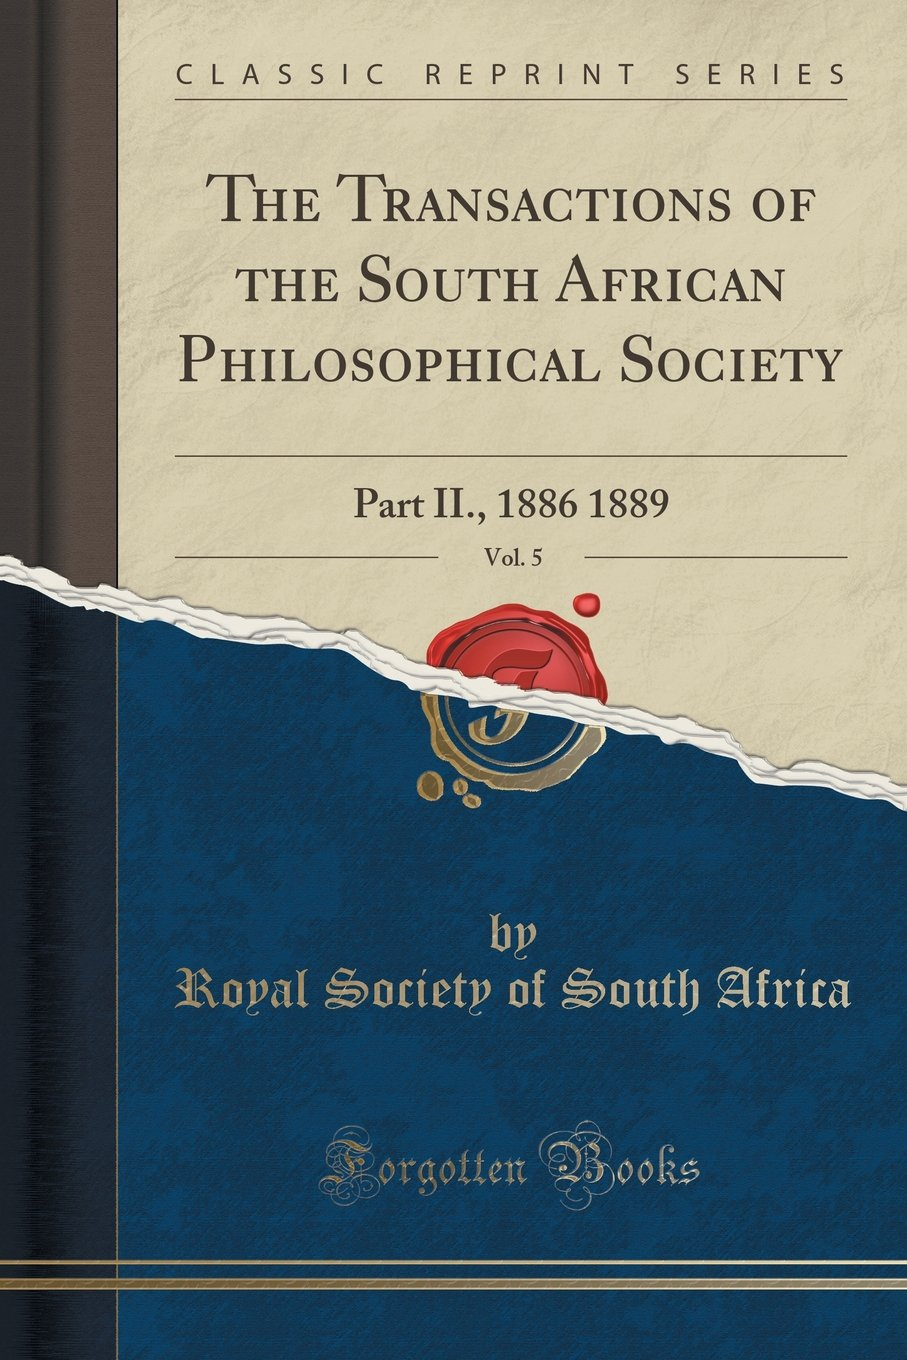 Download The Transactions of the South African Philosophical Society, Vol. 5: Part II., 1886 1889 (Classic Reprint) pdf